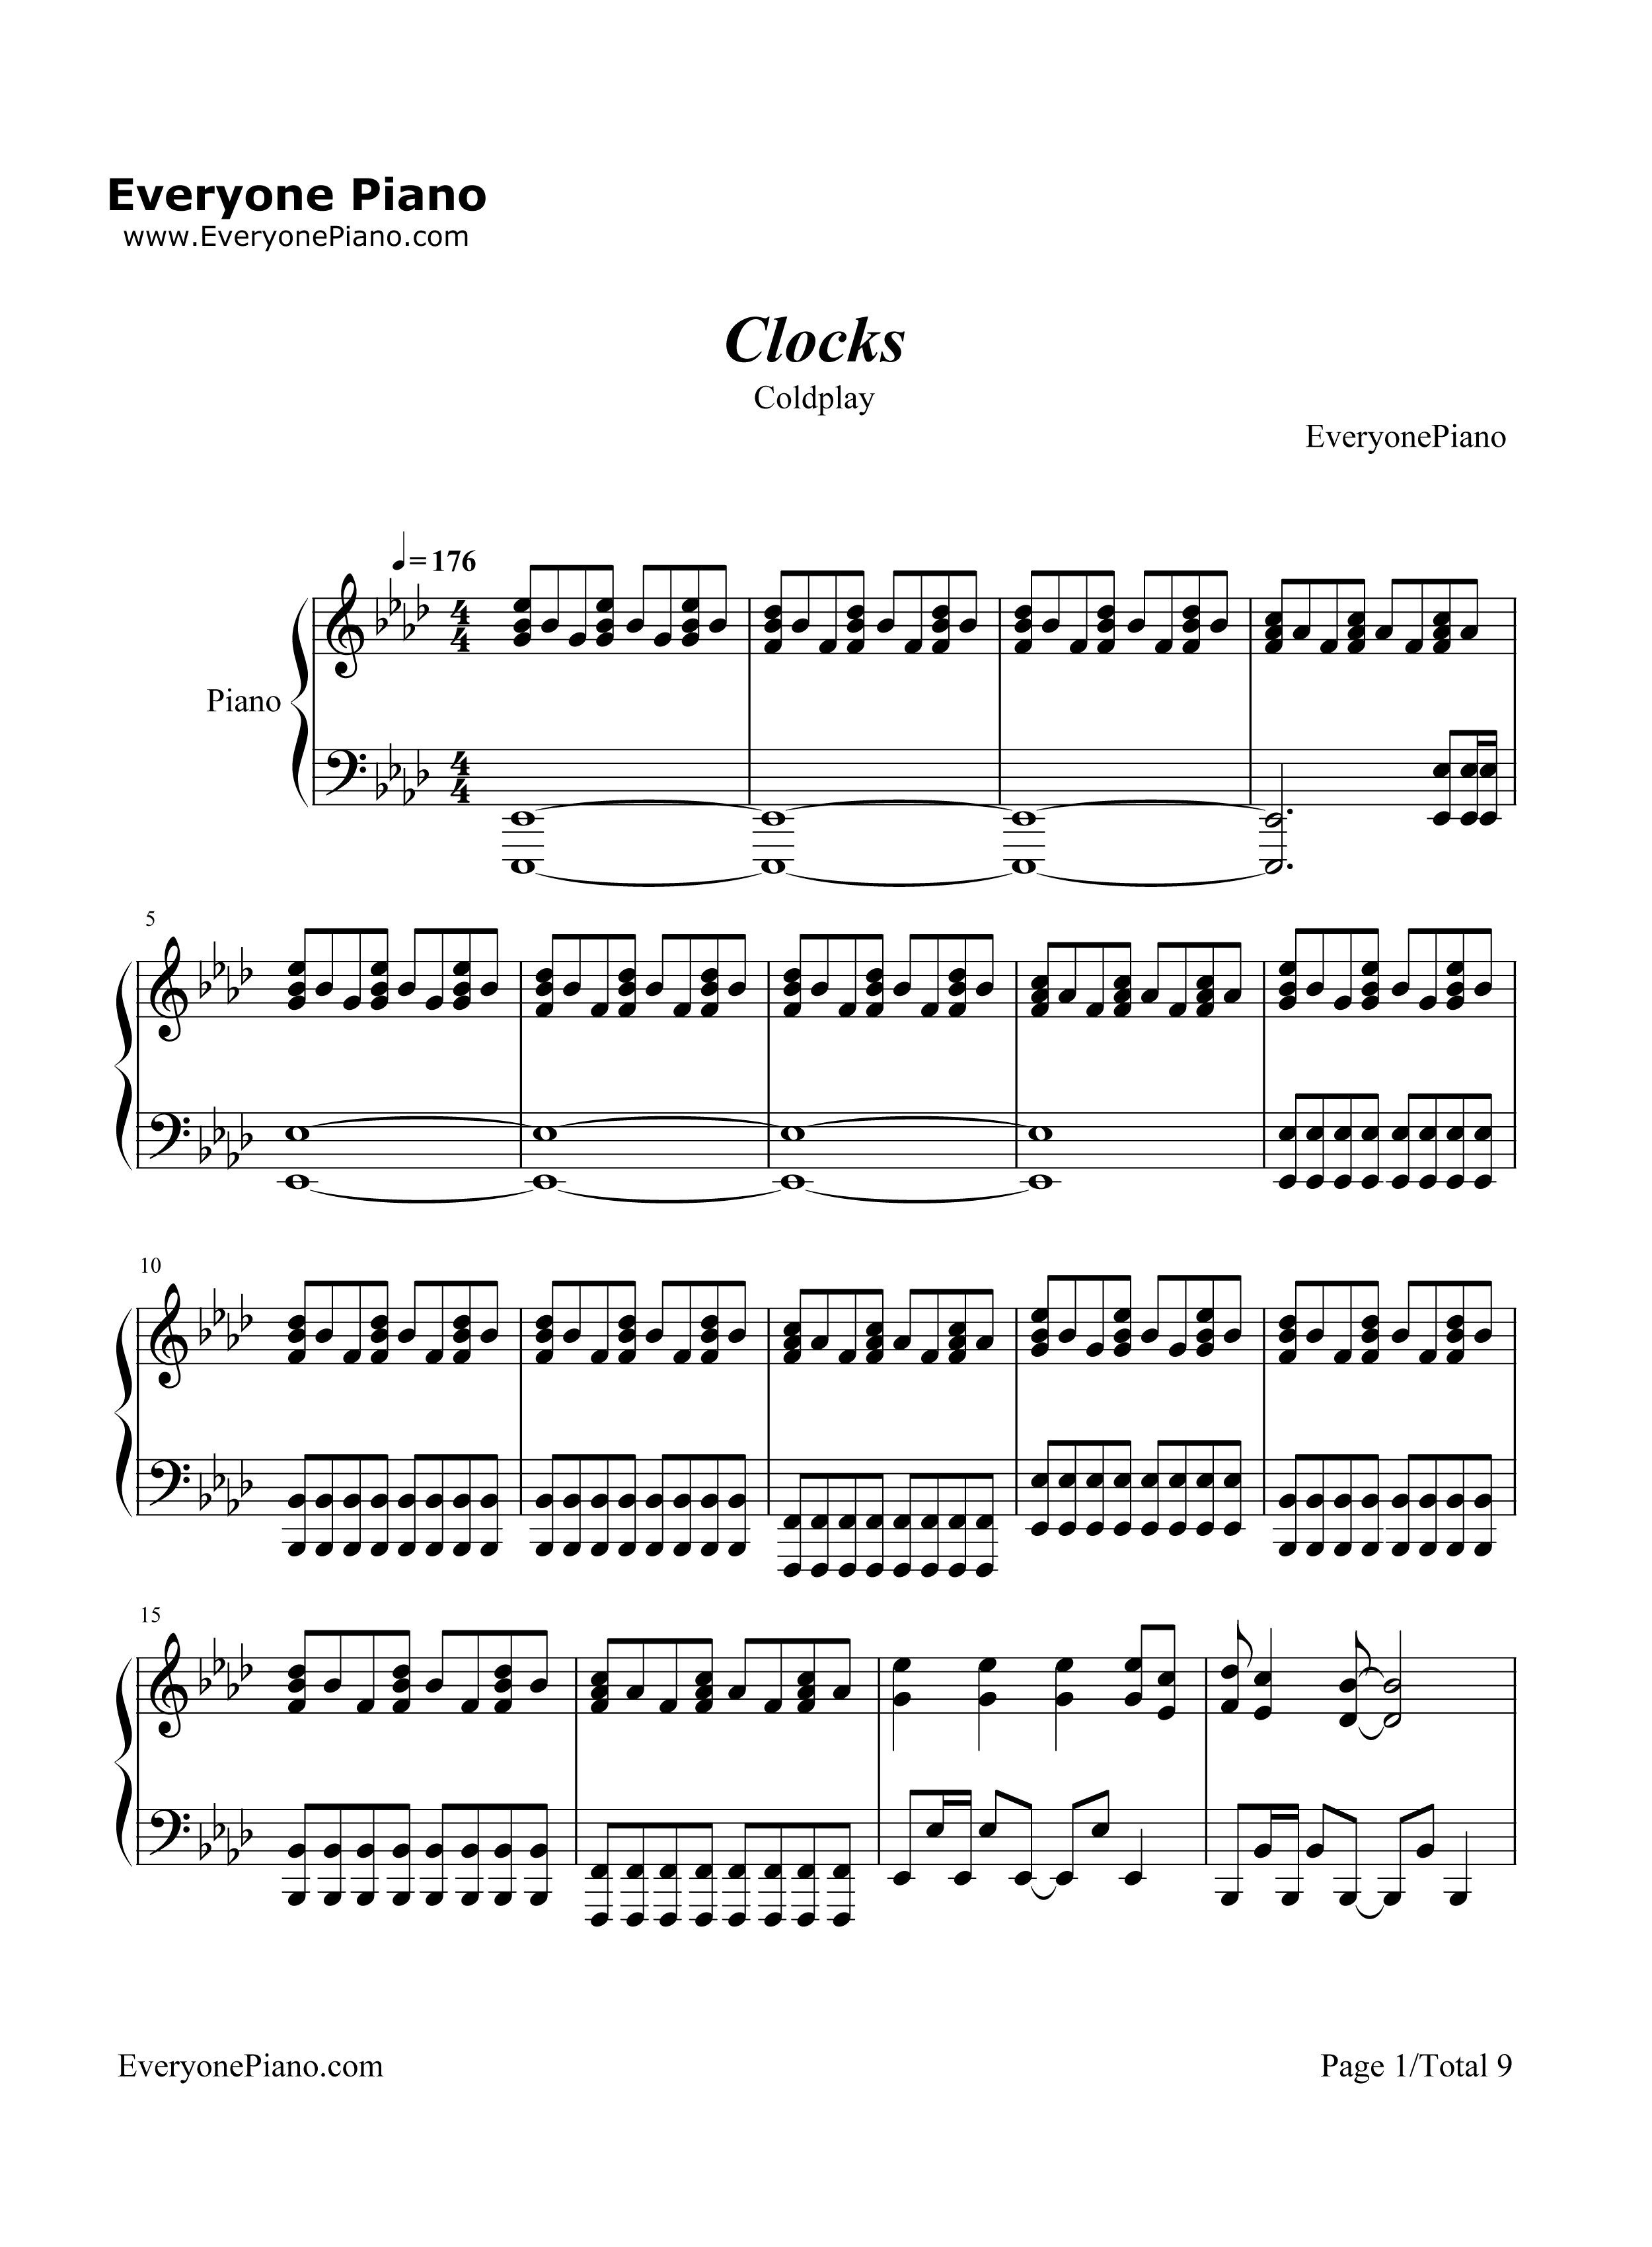 coldplay clocks piano sheet music Car Tuning